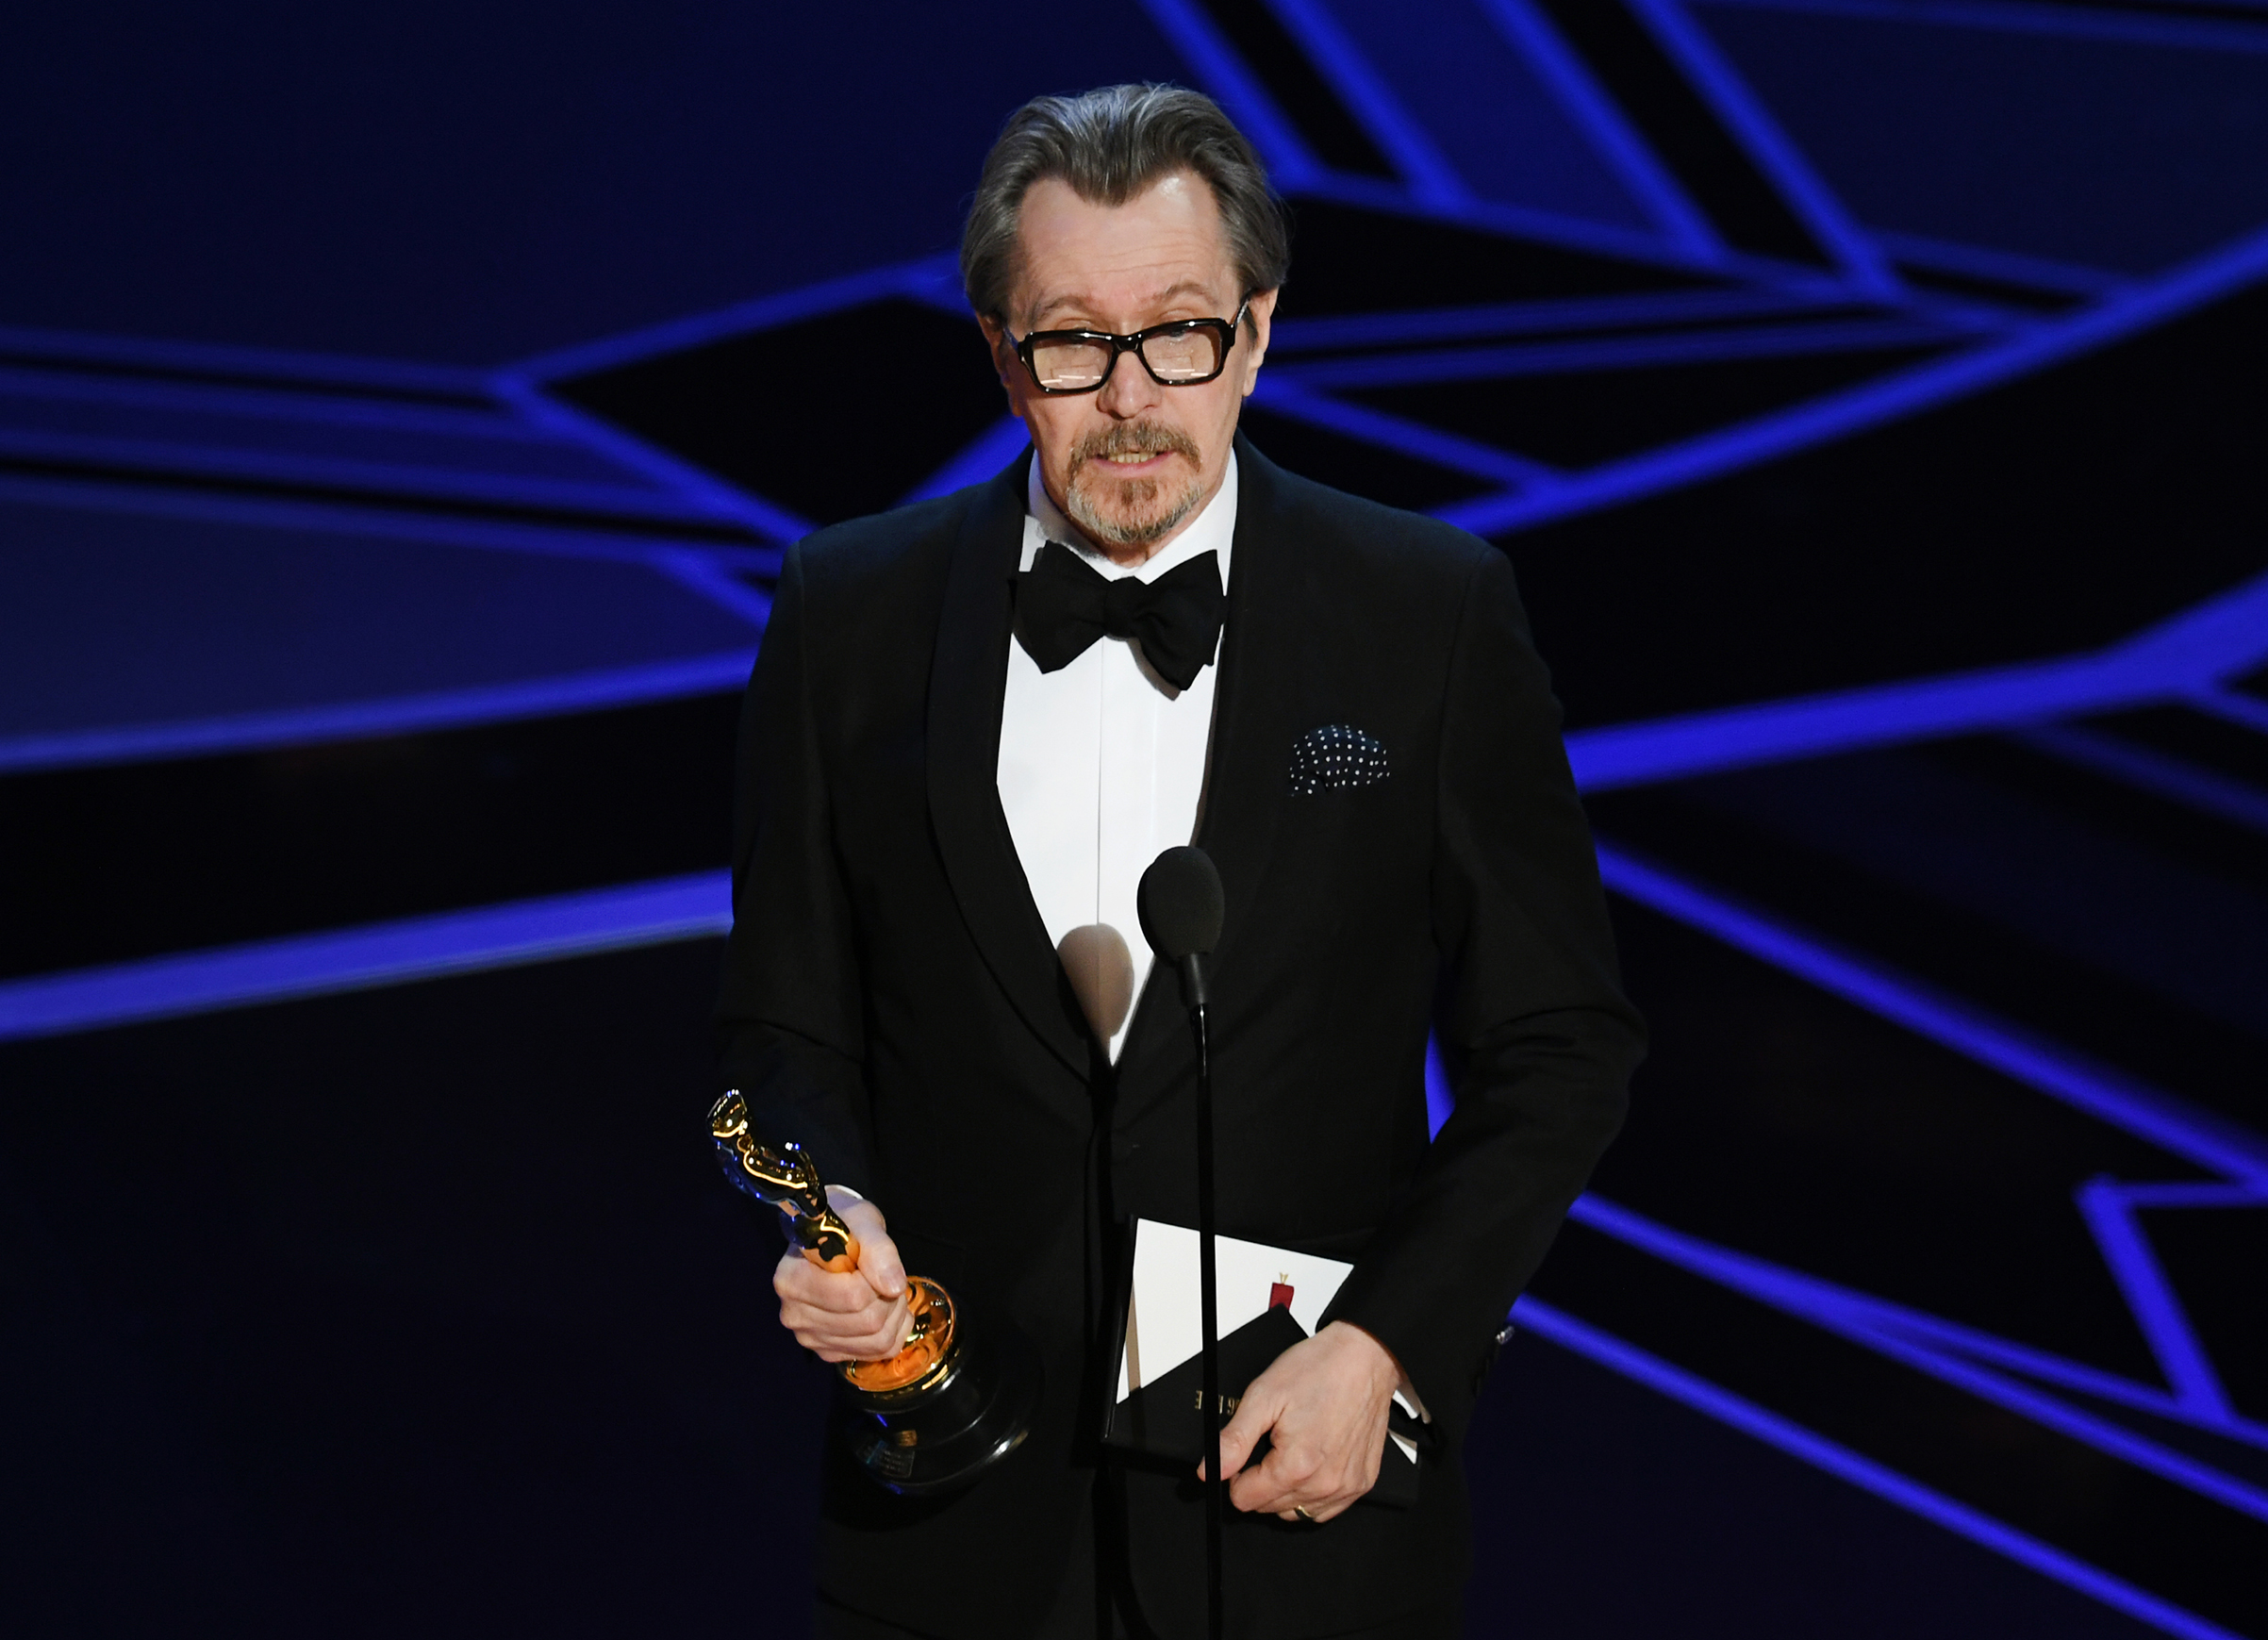 Actor Gary Oldman accepts Best Actor for 'Darkest Hour' onstage during the 90th Annual Academy Awards at the Dolby Theatre at Hollywood & Highland Center on March 4, 2018 in Hollywood.